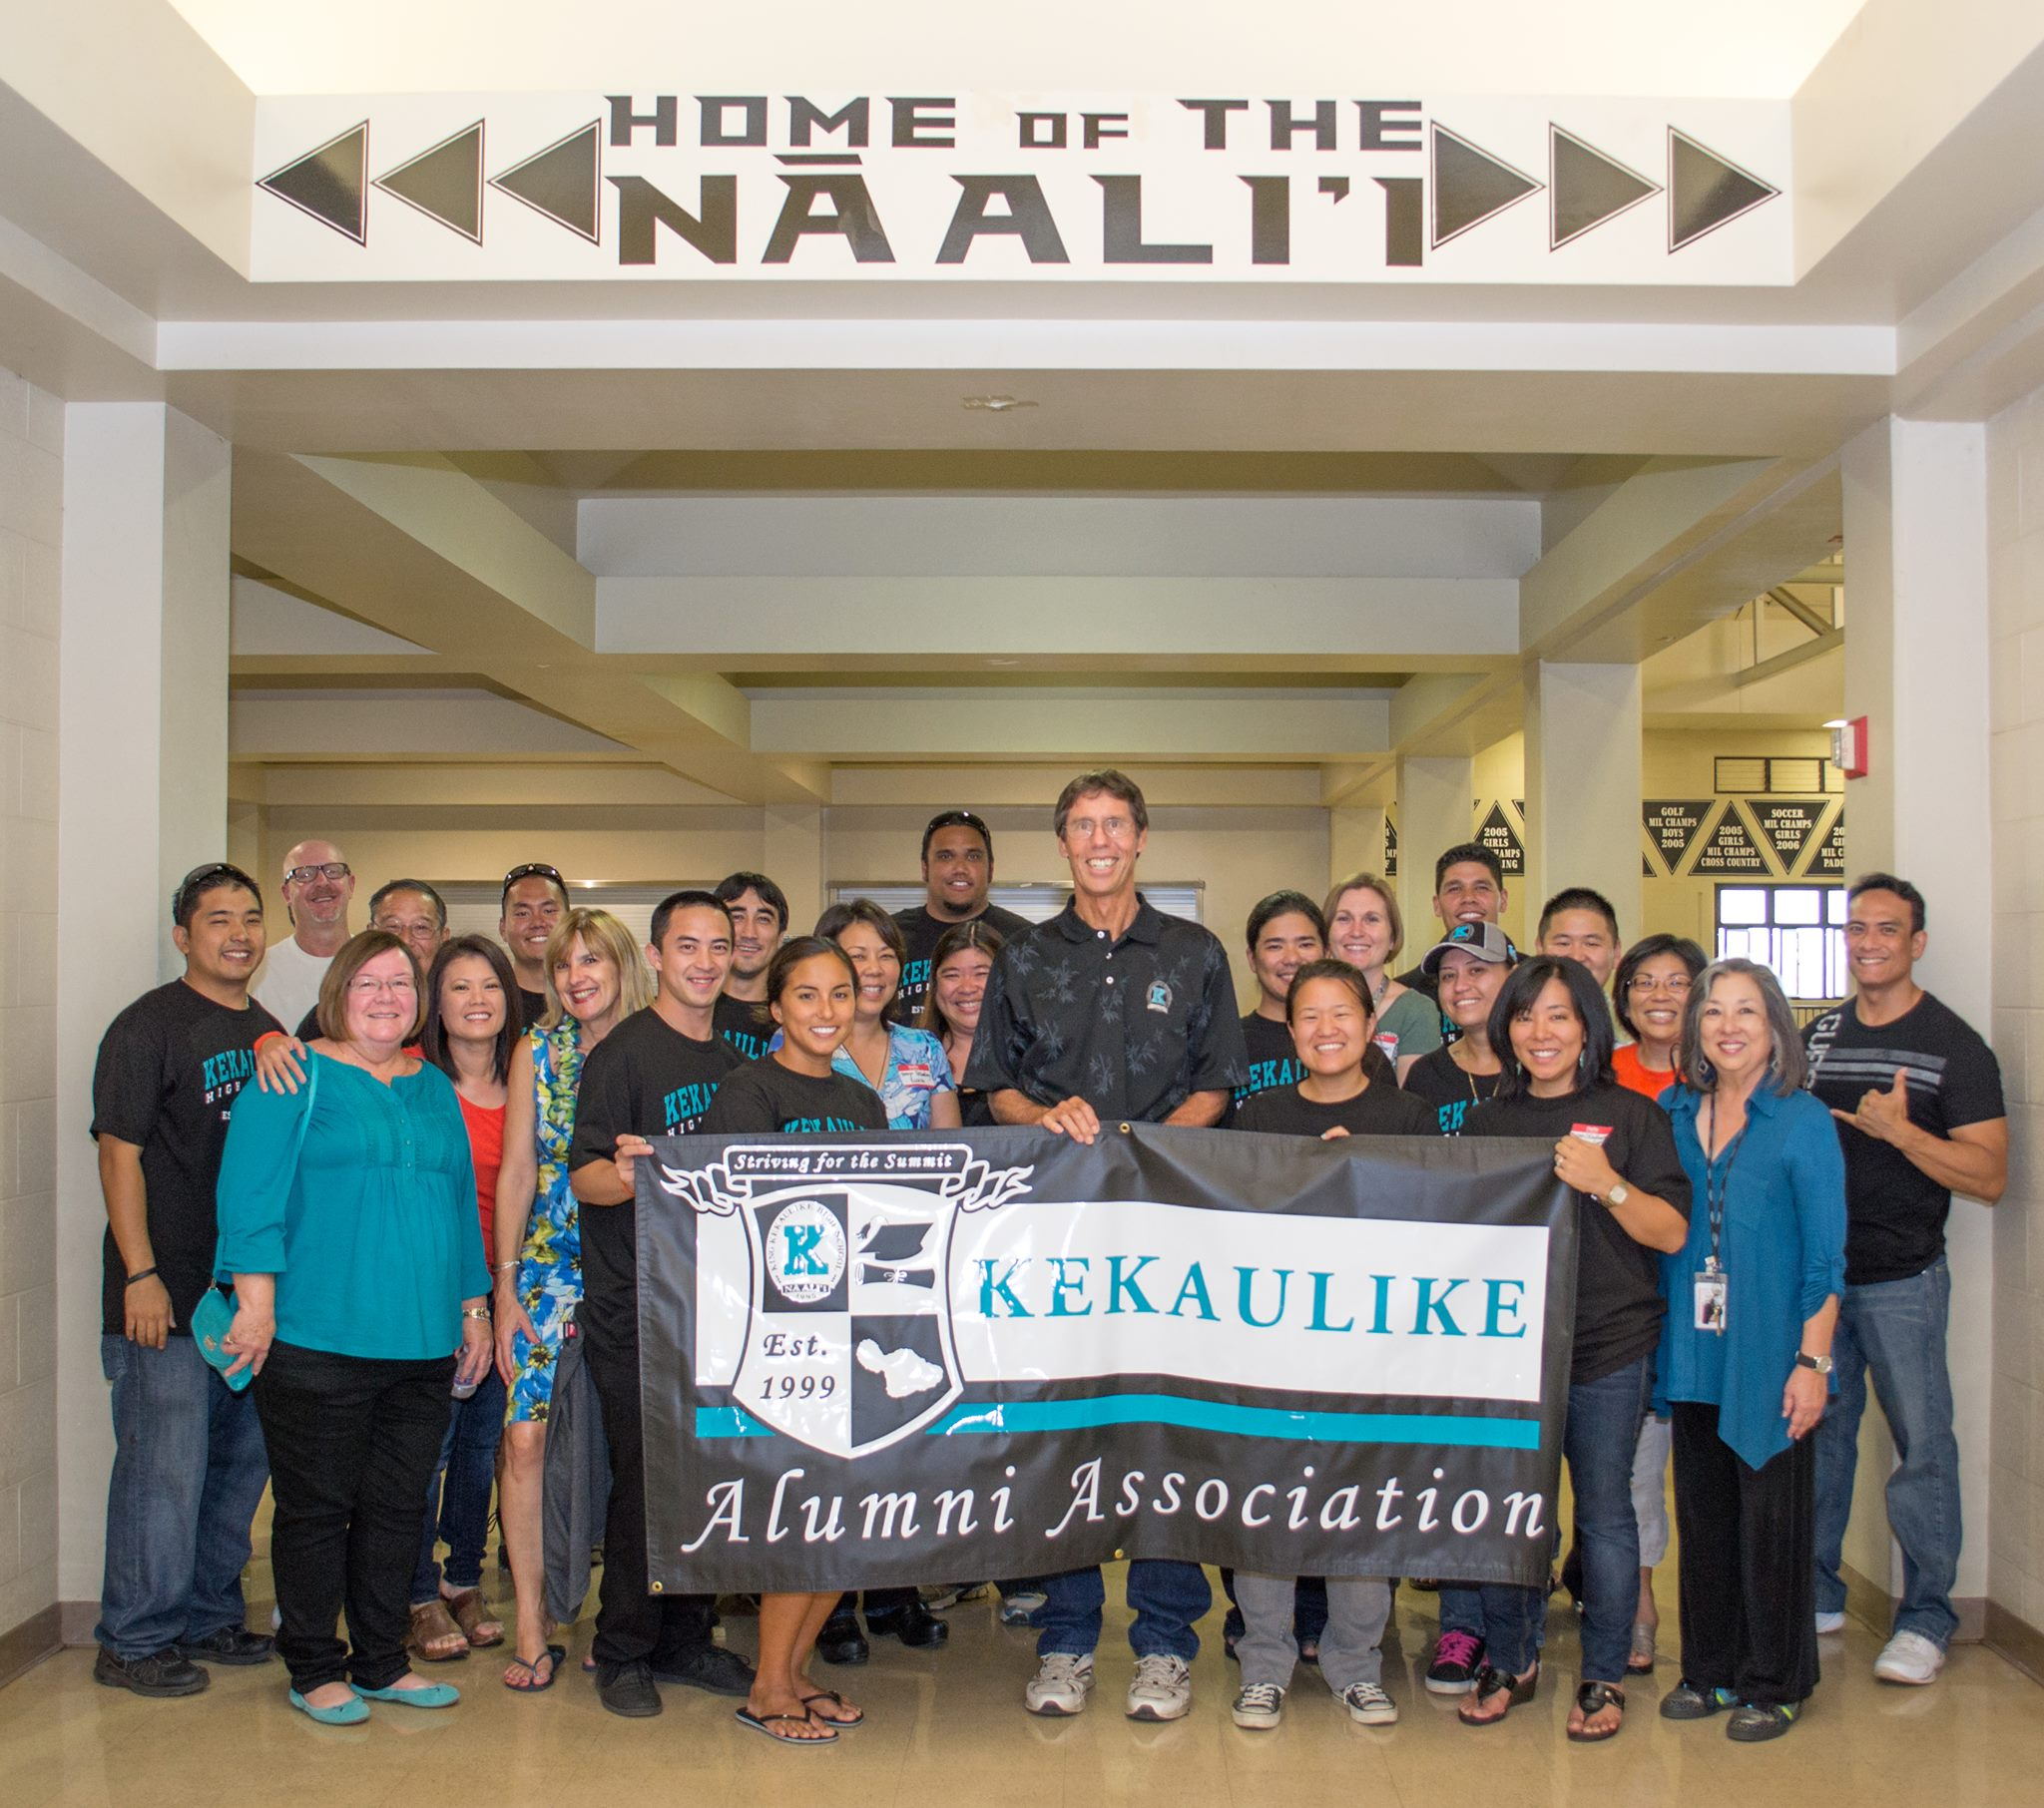 Attendees of the 2013 King Kekaulike Homecoming meeting and greet.